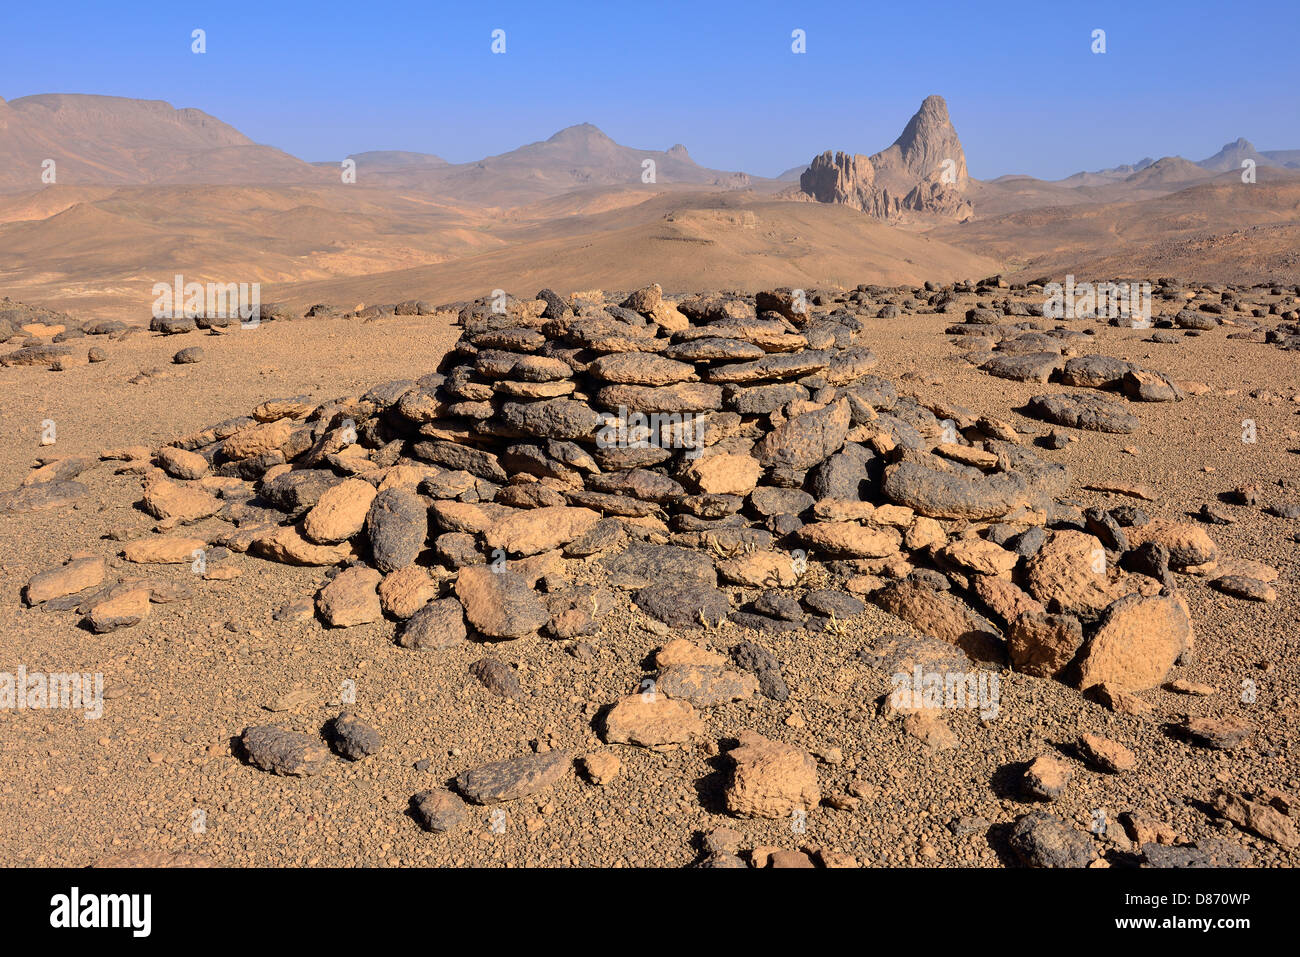 Algeria, Historic food cache and Mount Aouknet - Stock Image